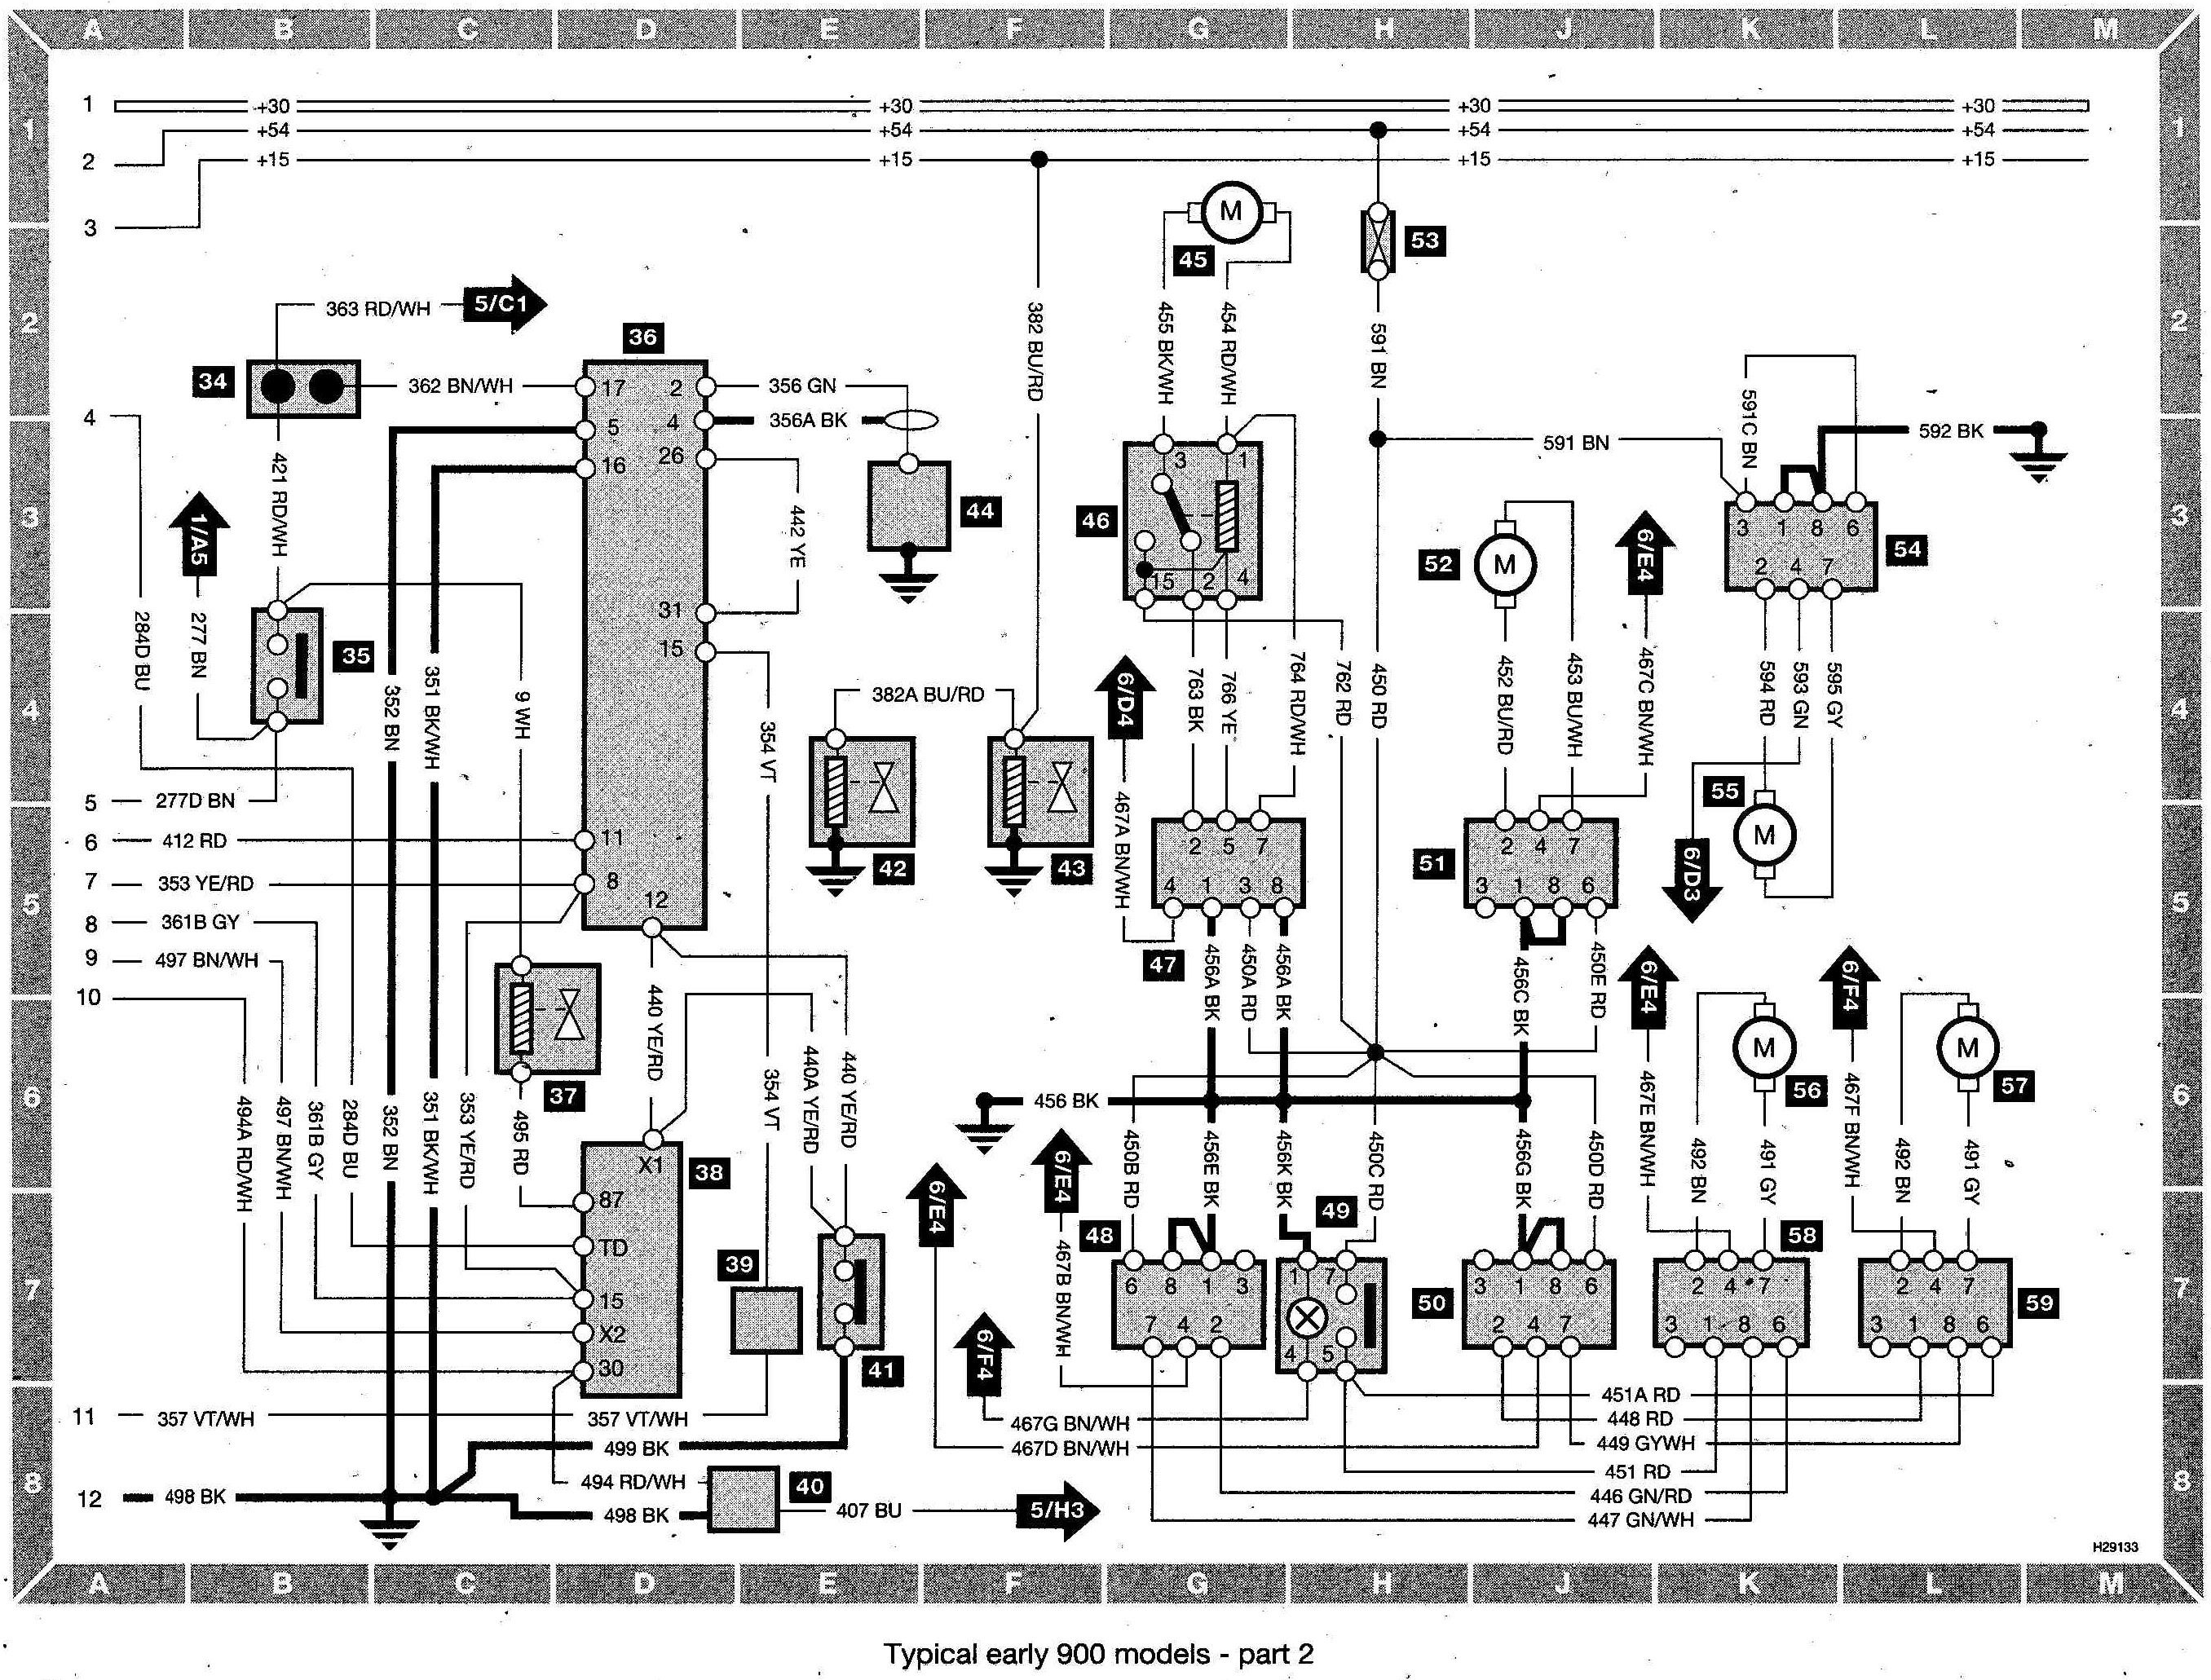 2004 Saab 9 5 Wiring Diagram | Wiring Diagram Database  Saab Wiring Diagram on 2006 saab 9-7x wiring diagram, 2006 volvo xc90 wiring diagram, 2005 saab 9-2x wiring diagram, 2006 ford freestar wiring diagram, 2006 jeep commander wiring diagram, 2006 nissan frontier wiring diagram, 1995 saab 900 wiring diagram, 2006 chevrolet aveo wiring diagram, 2001 saab 9-5 wiring diagram, 2005 hyundai tiburon wiring diagram, 1999 saab 9-5 wiring diagram, 2006 honda odyssey wiring diagram, 2007 hyundai entourage wiring diagram, 2006 mini cooper wiring diagram,